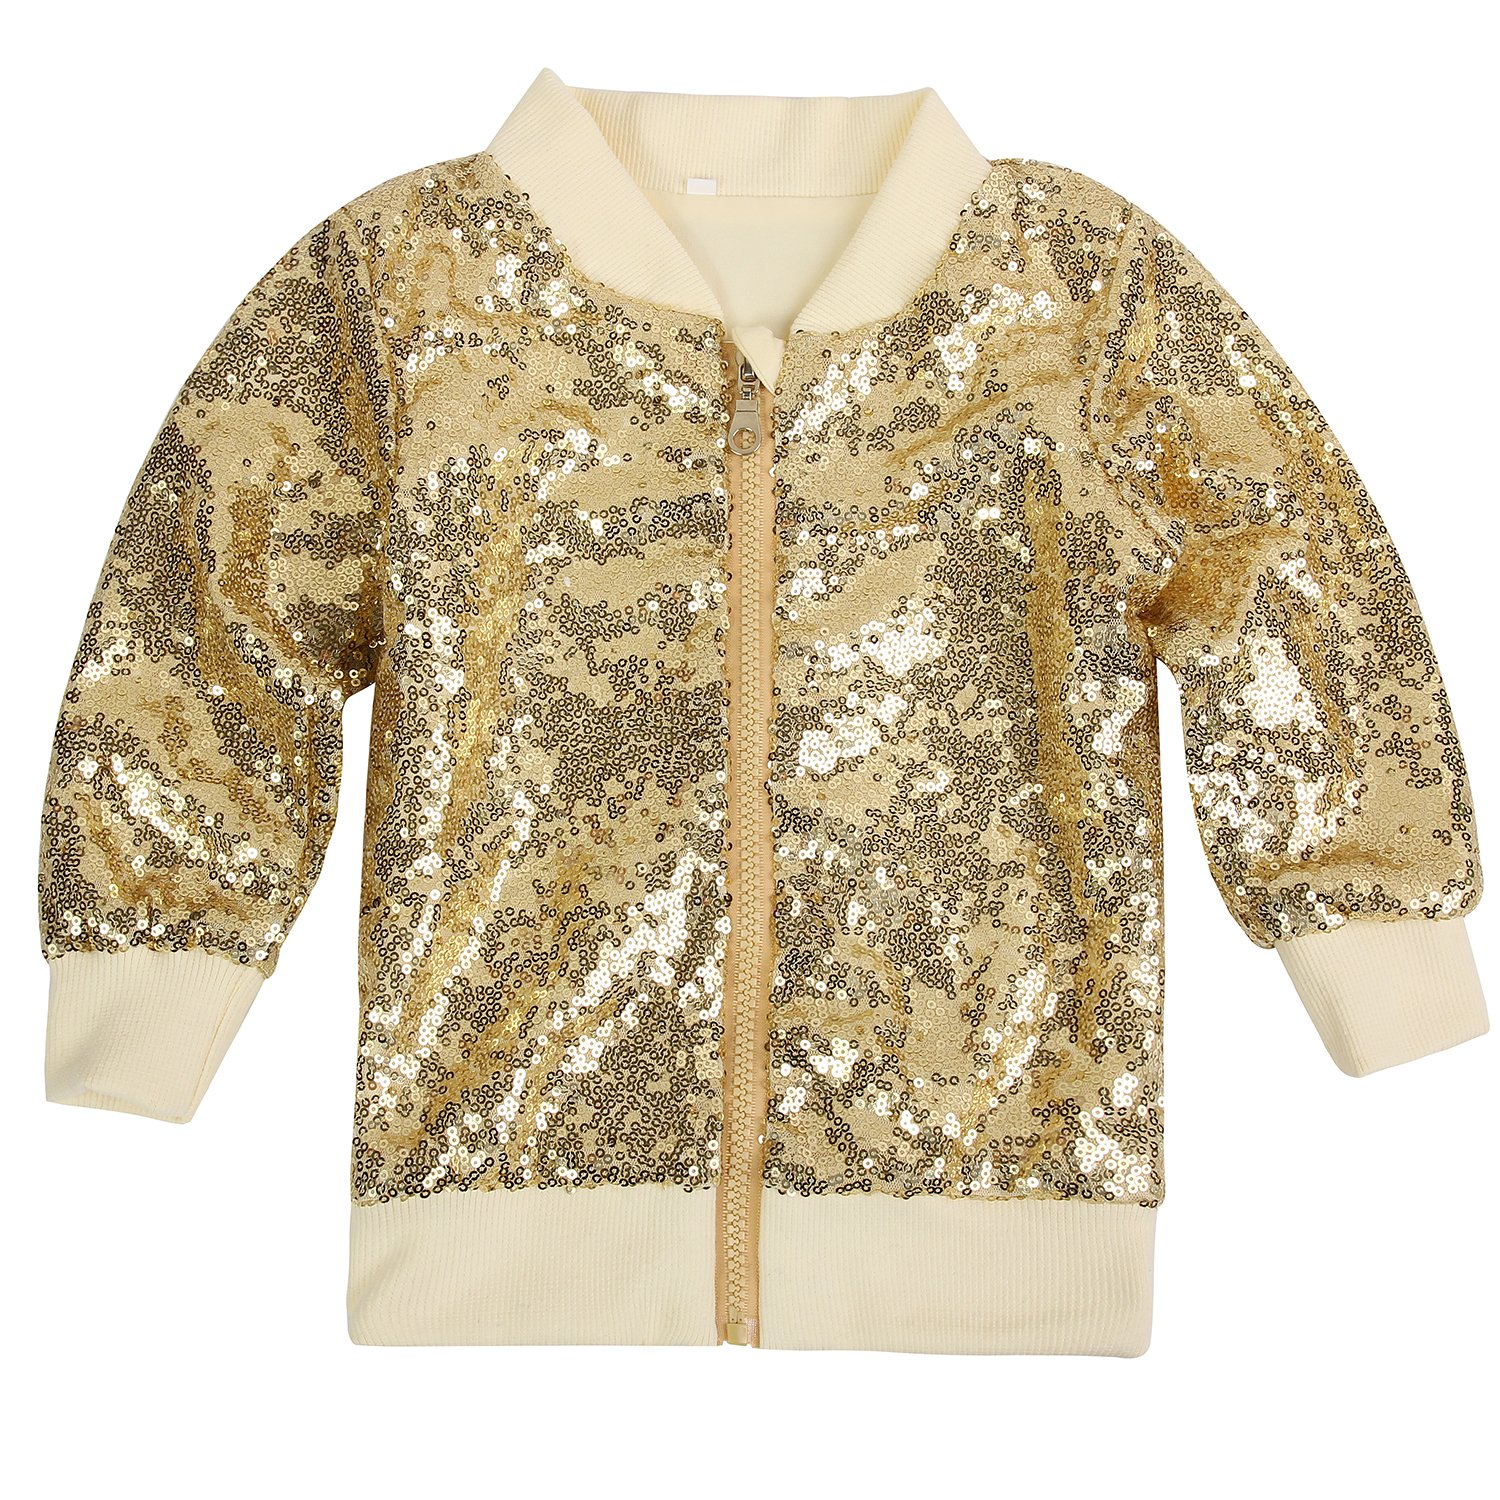 Cilucu Kids Jackets Girls Boys Gold Sequin Zipper Coat Jacket for Toddler Long Sleeve Clothes 5-6T by Cilucu